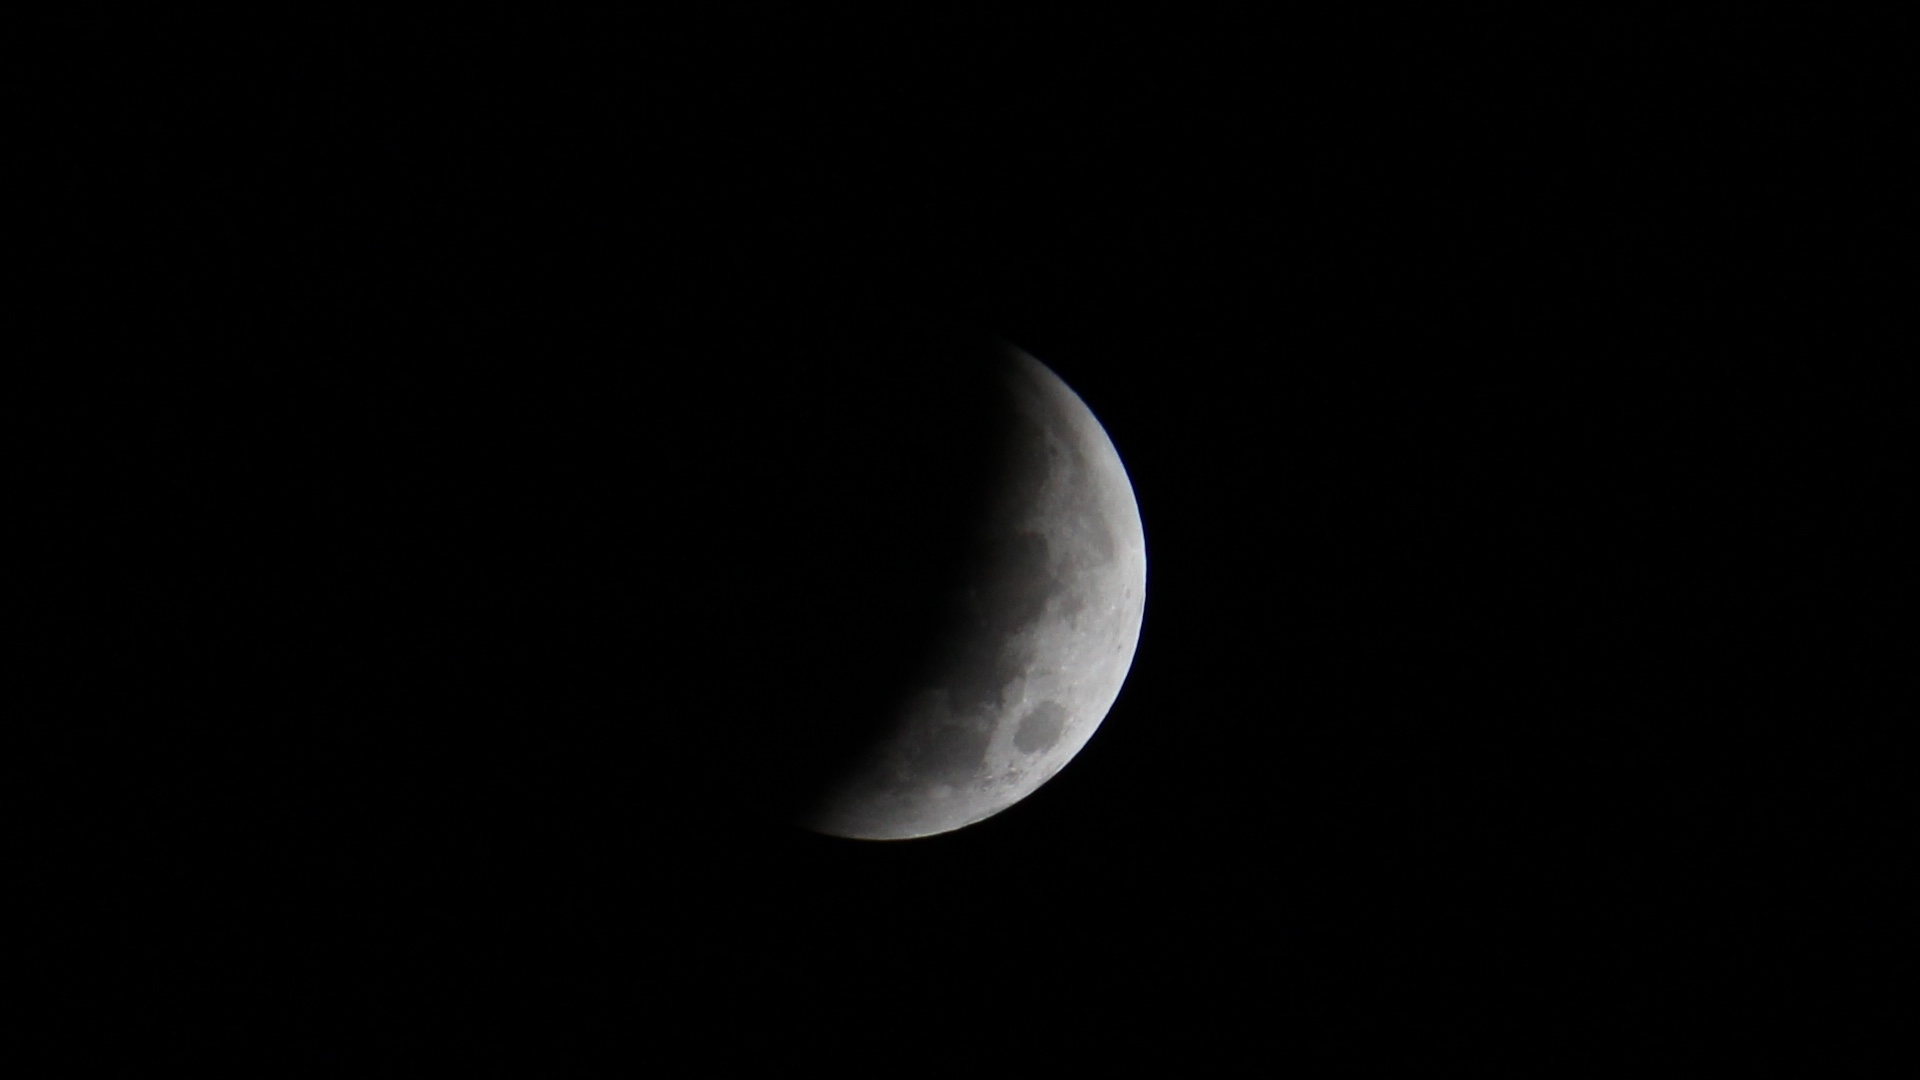 Lunar Eclipse 20141008 6